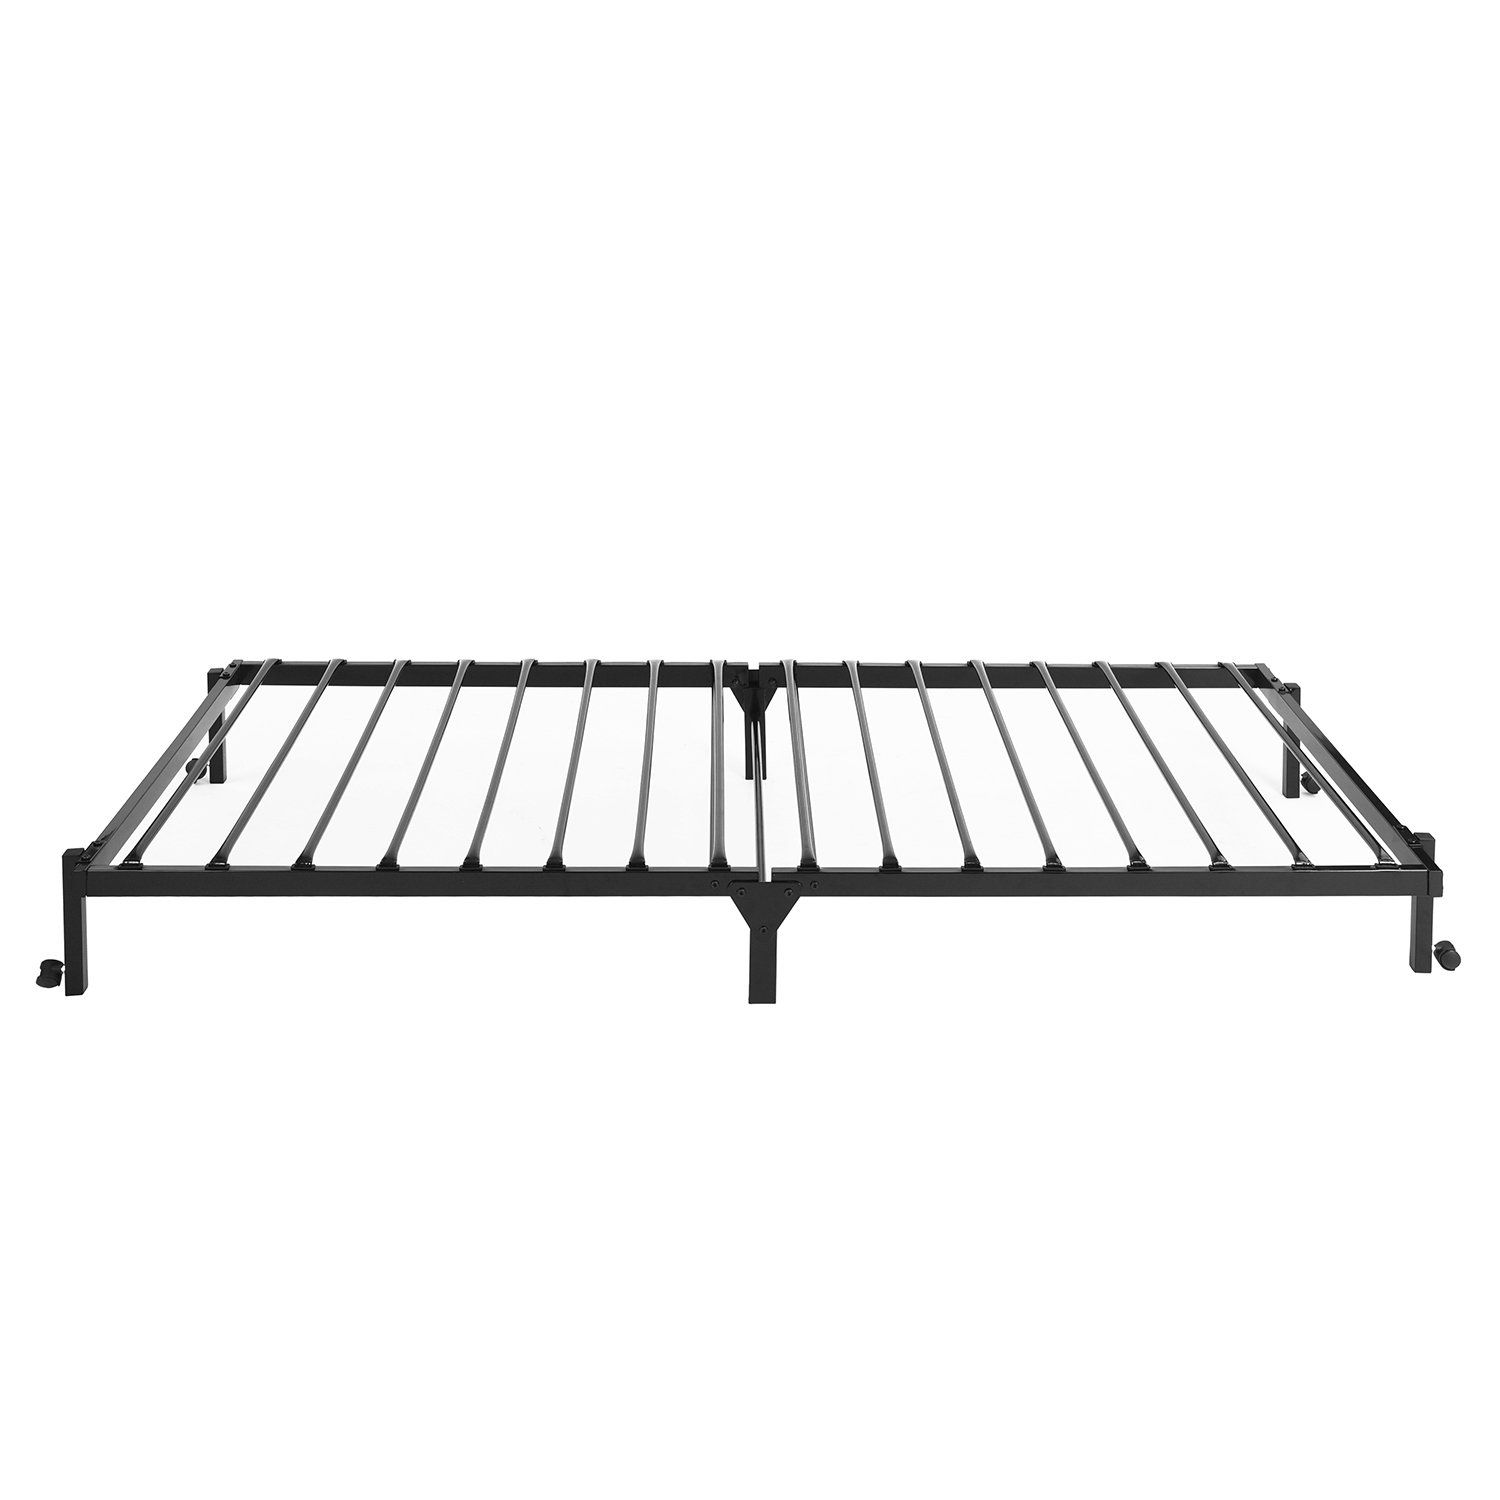 Greenforest Folding Bed Base Frame Twin Size Foldable Metal